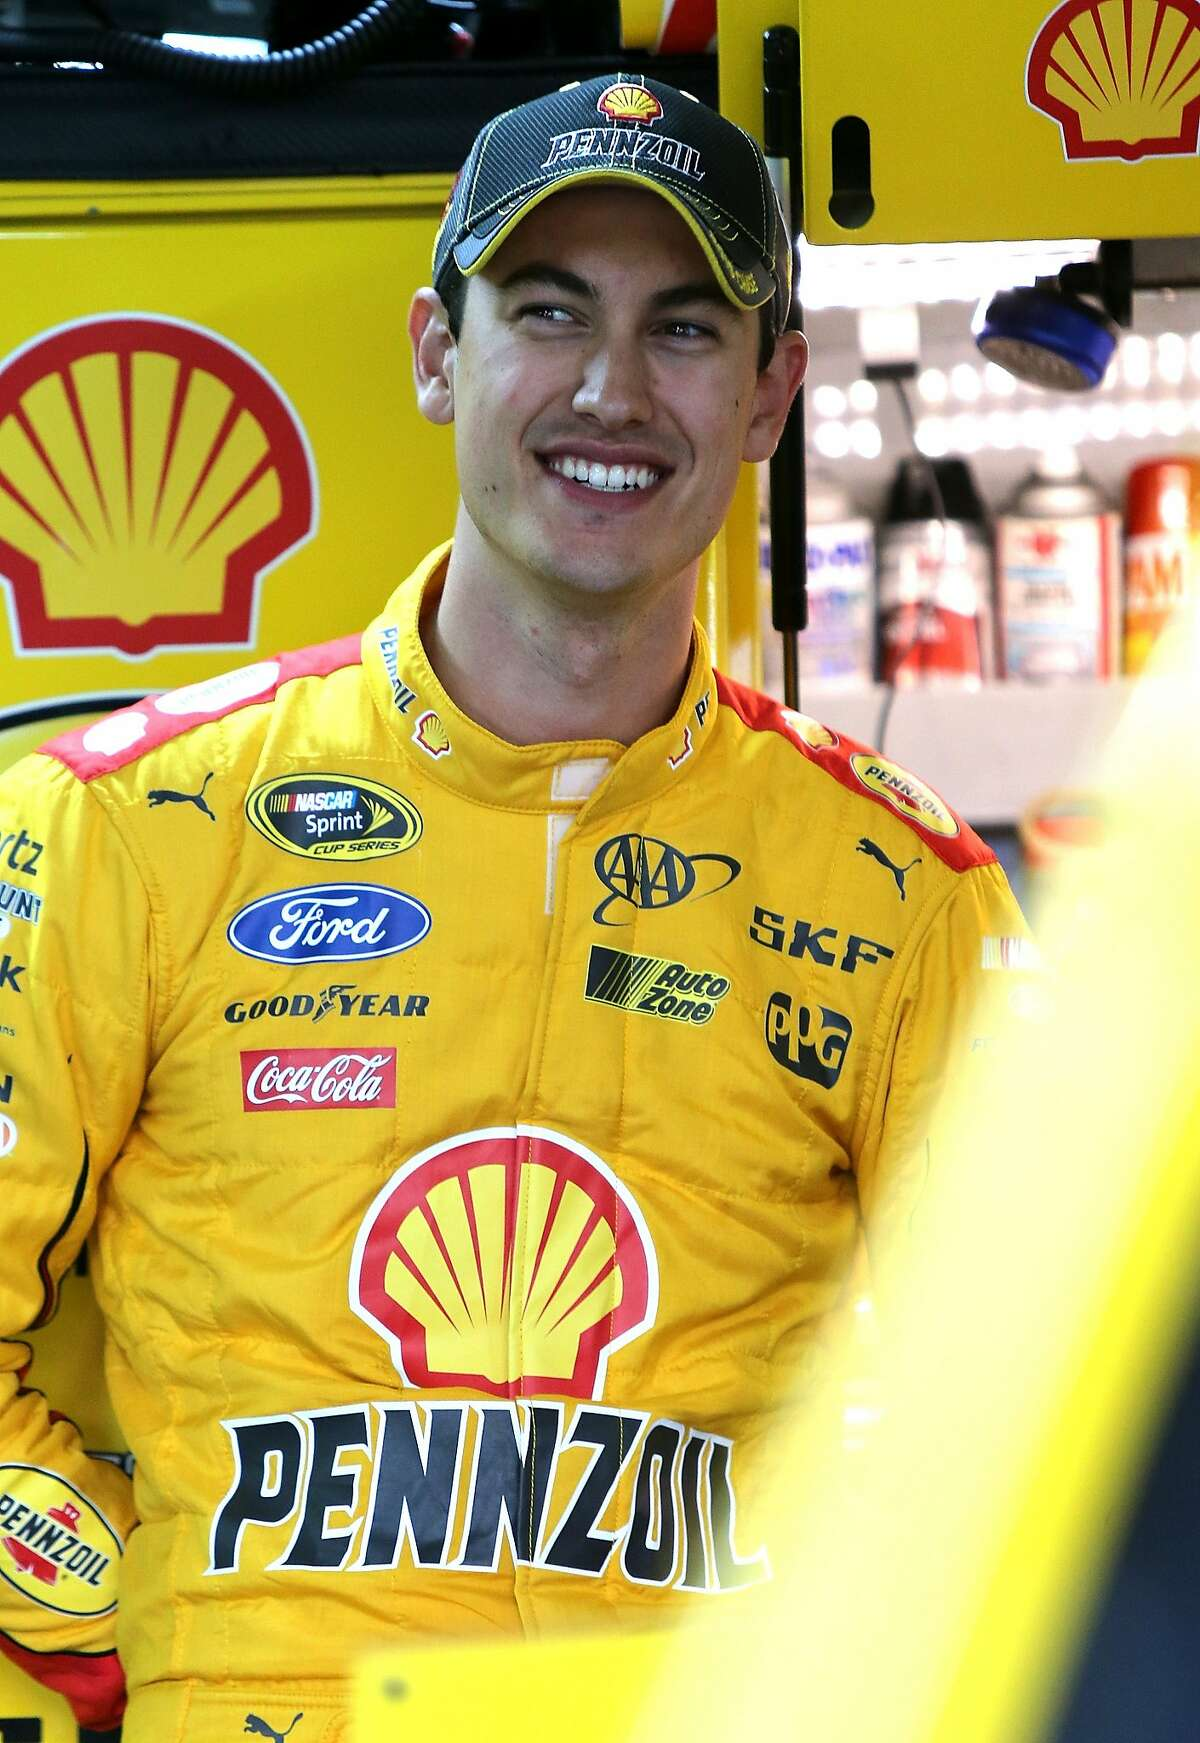 CHARLOTTE, NC - OCTOBER 09: Joey Logano, driver of the #22 Shell Pennzoil Ford, stands in the garage area during practice for the NASCAR Sprint Cup Series Bank of America 500 at Charlotte Motor Speedway on October 9, 2015 in Charlotte, North Carolina. (Photo by Jerry Markland/Getty Images)